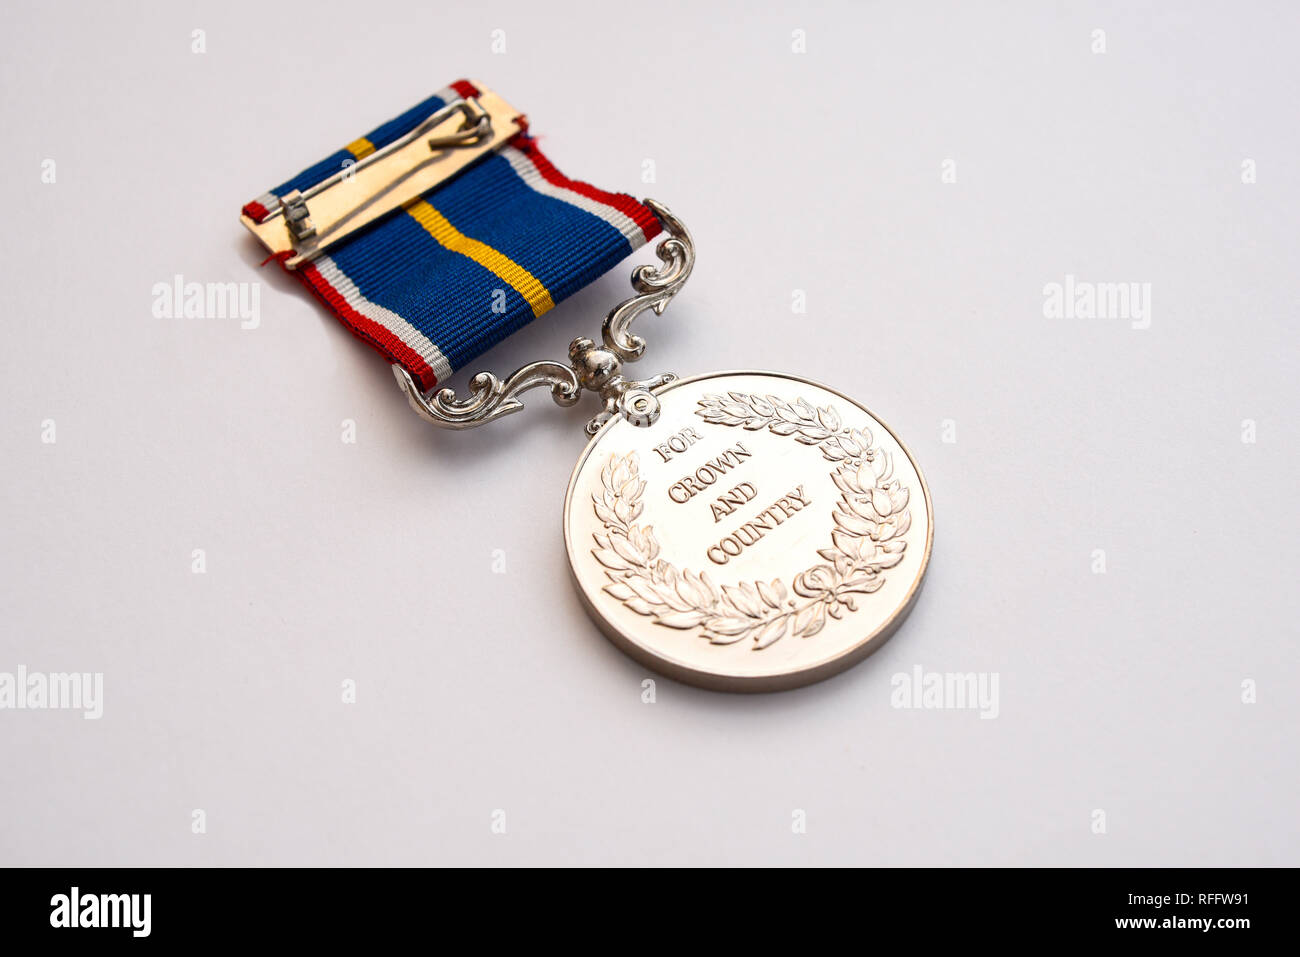 national-service-medal-unofficial-commemorative-medal-sold-by-award-productions-ltd-and-co-sponsored-by-the-royal-british-legion-conscription-1930-RFFW91.jpg